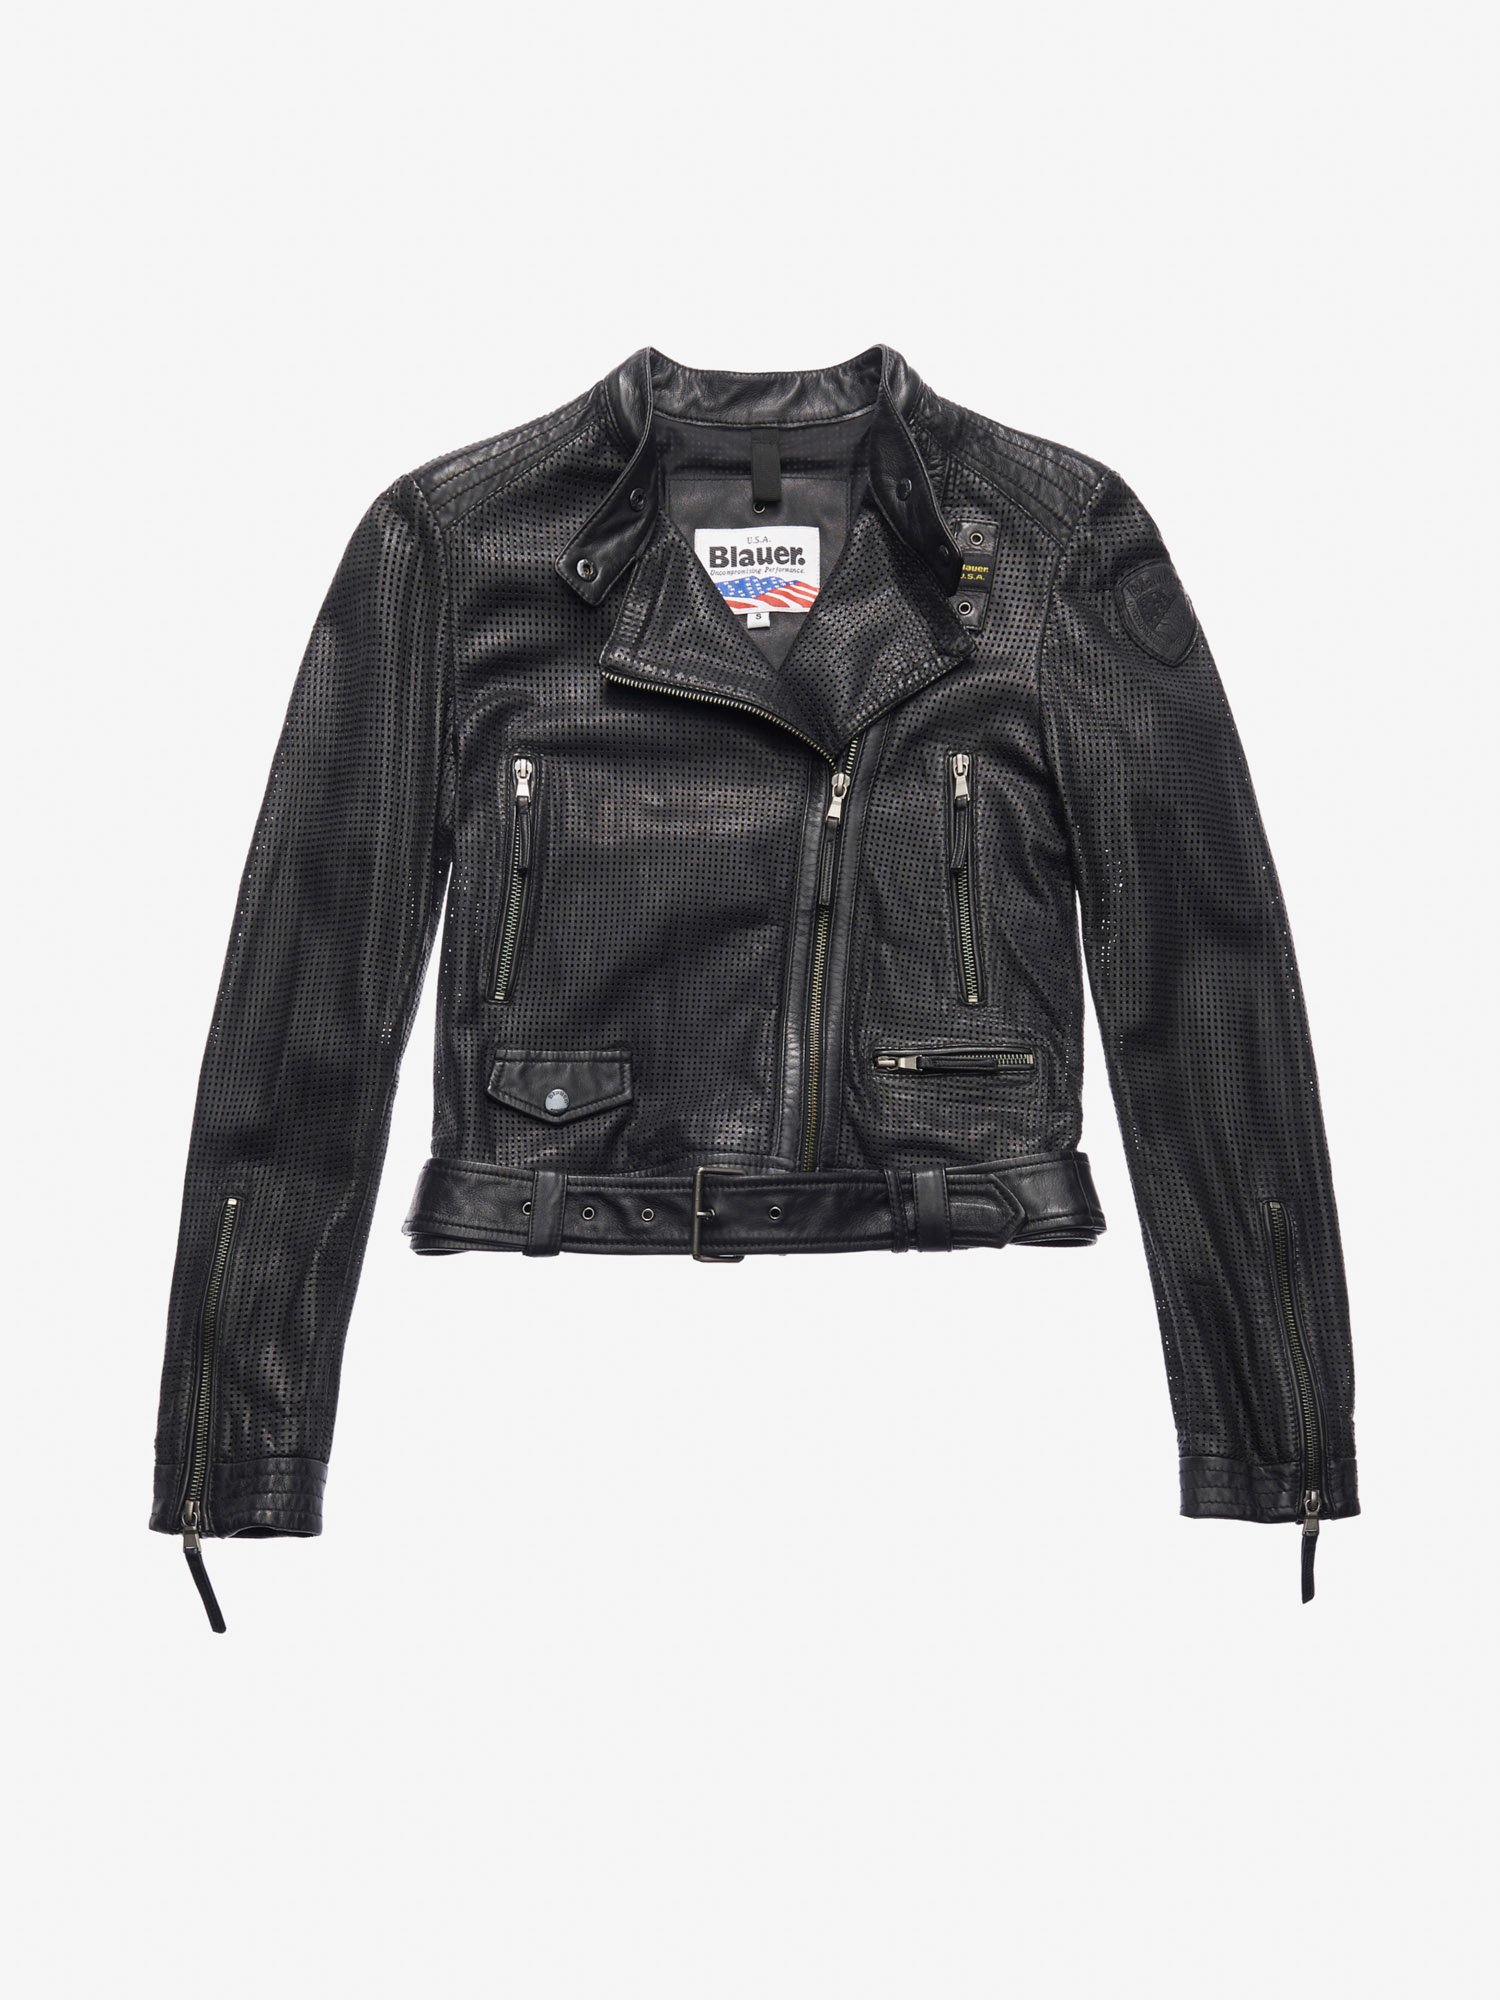 43ed31e7b938 Blauer - MOORE PERFORATED BIKER-STYLE JACKET - Black - 1 ...